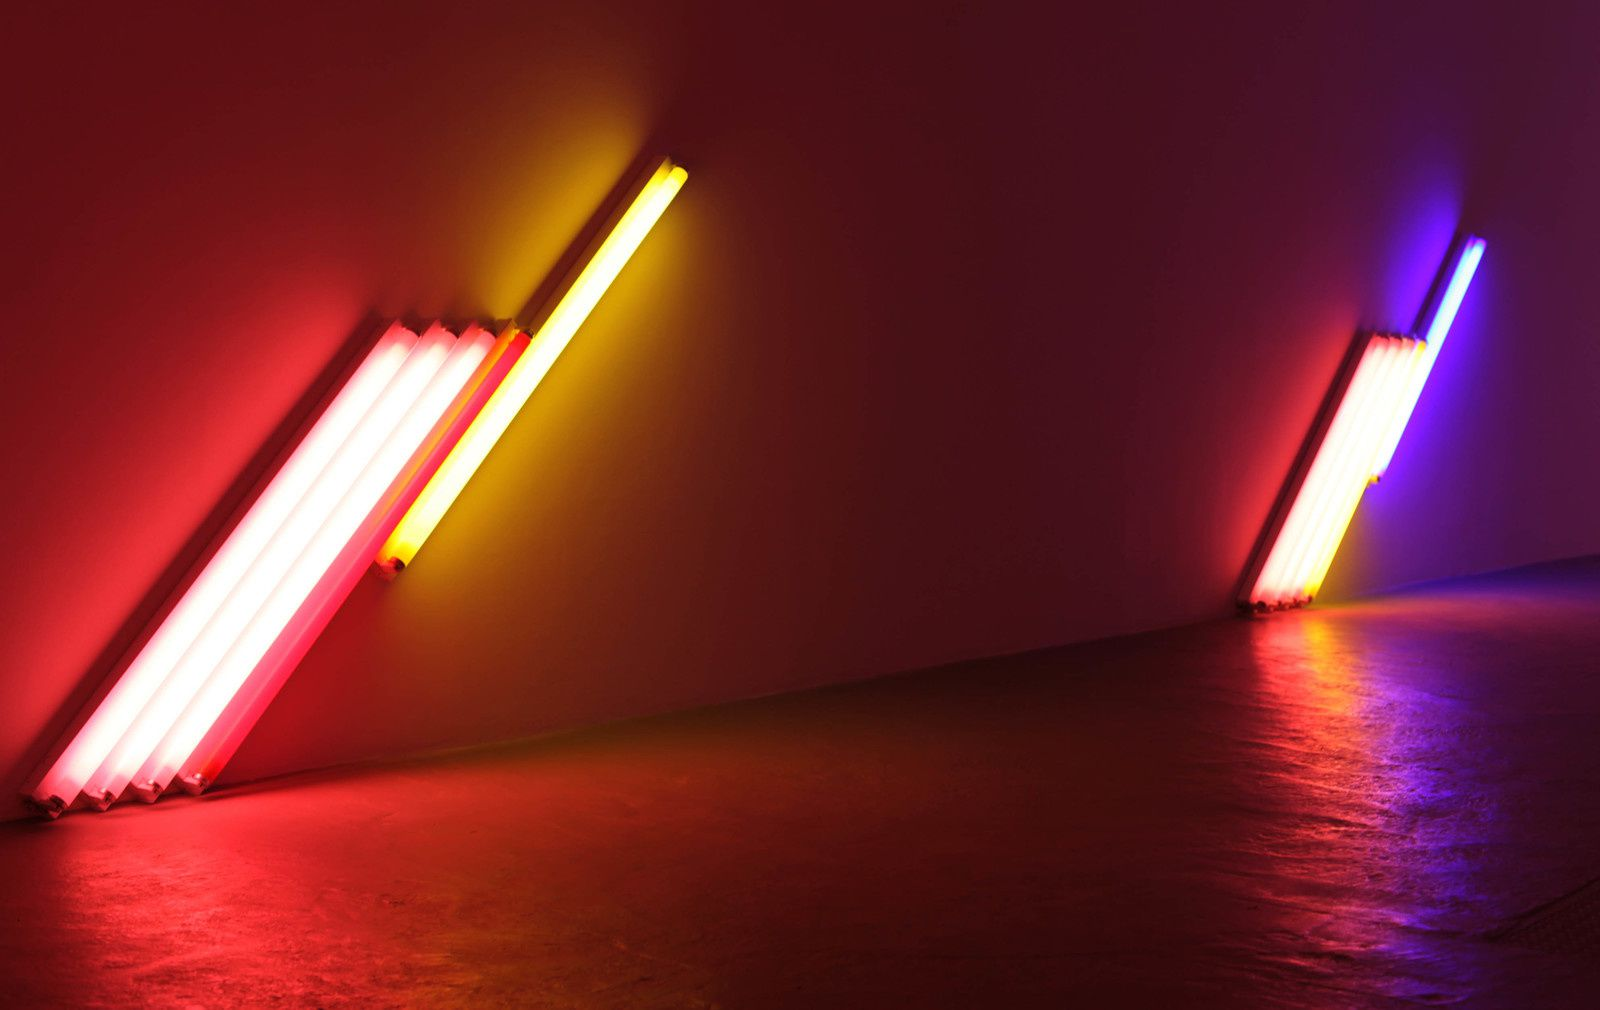 """Untitled (for Frederika and Ian) 2 et 3"", 1987 de Dan FLAVIN - Courtesy Galerie David Zwirner Paris © Photo Éric Simon"